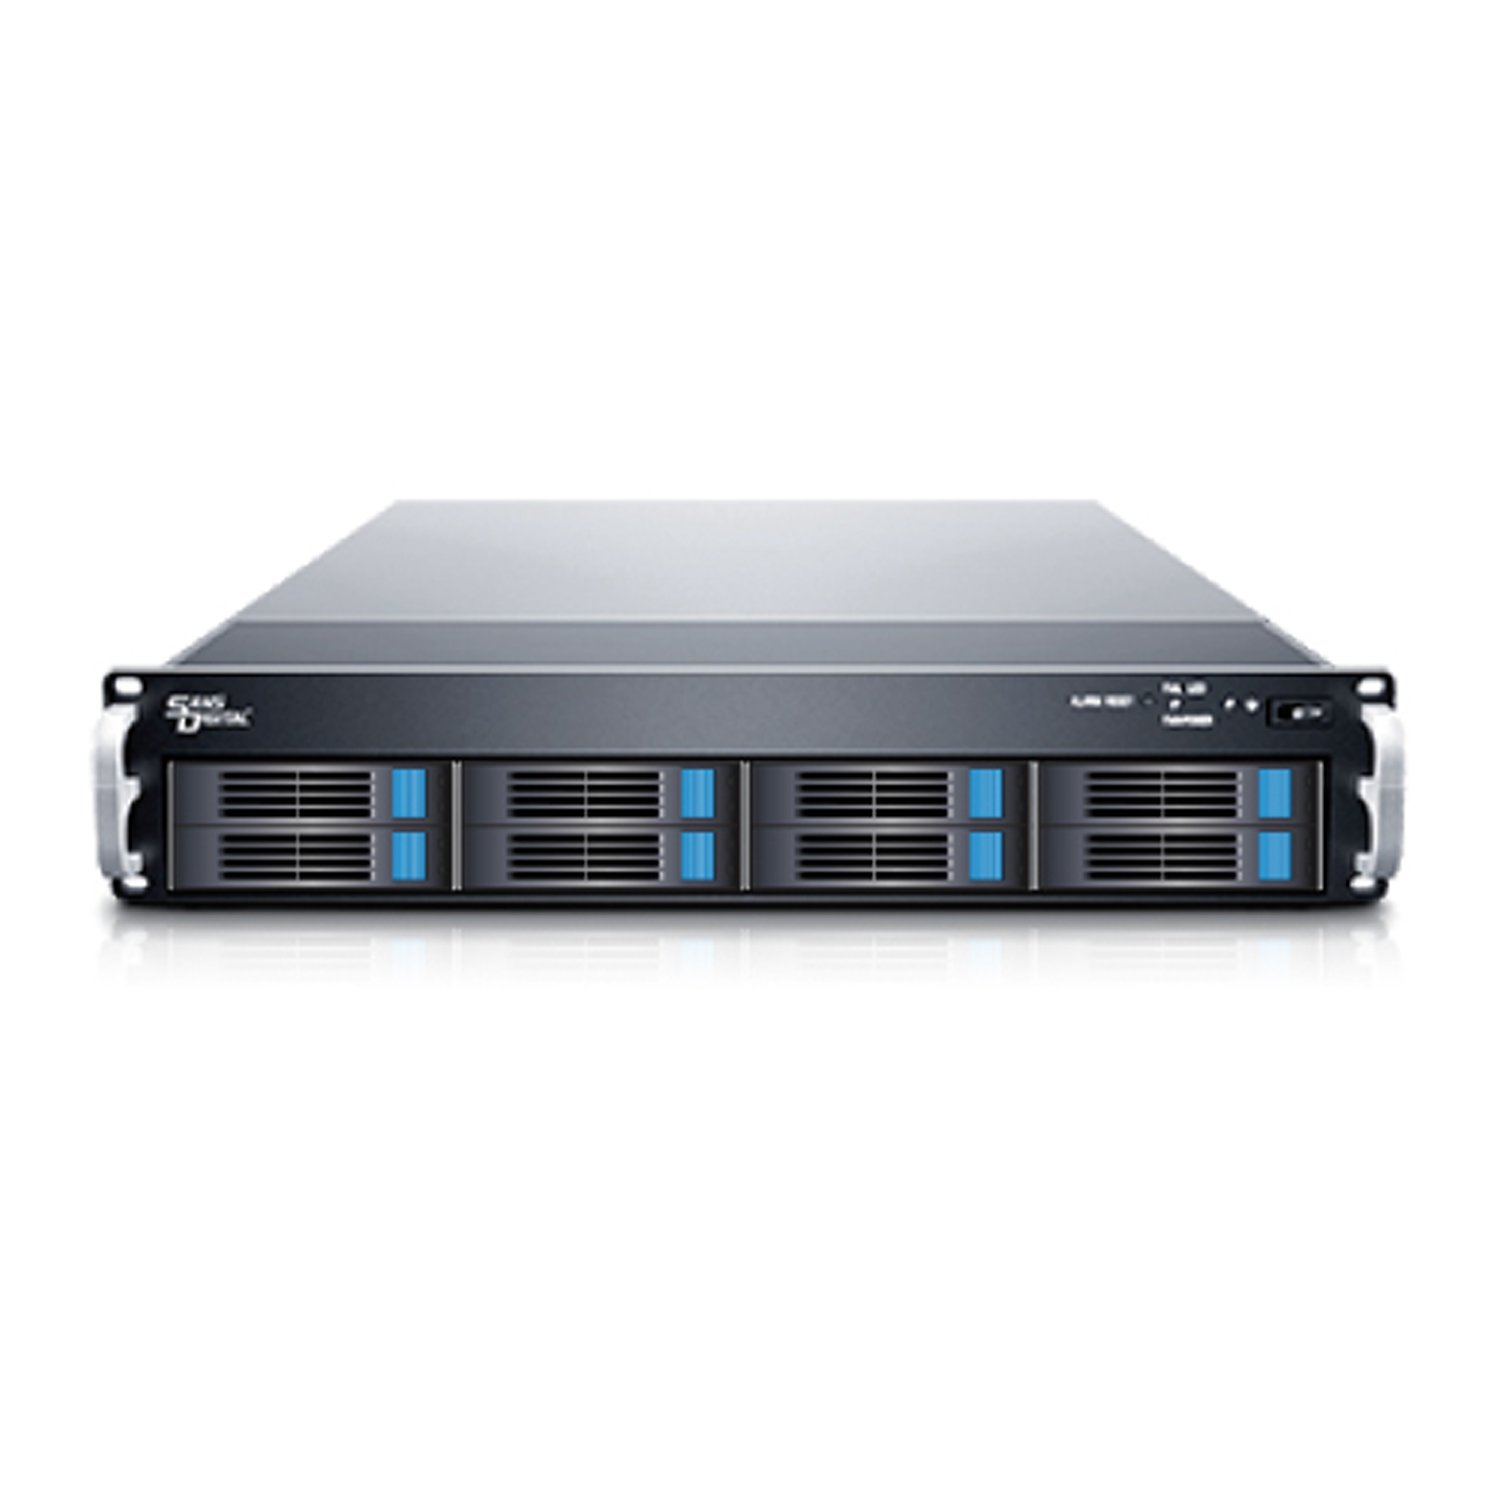 Sans Digital Removable Drive ER316I? 3U Rackmount 16Bay SATA to iSCSI 2xGbE RAID Black Retail